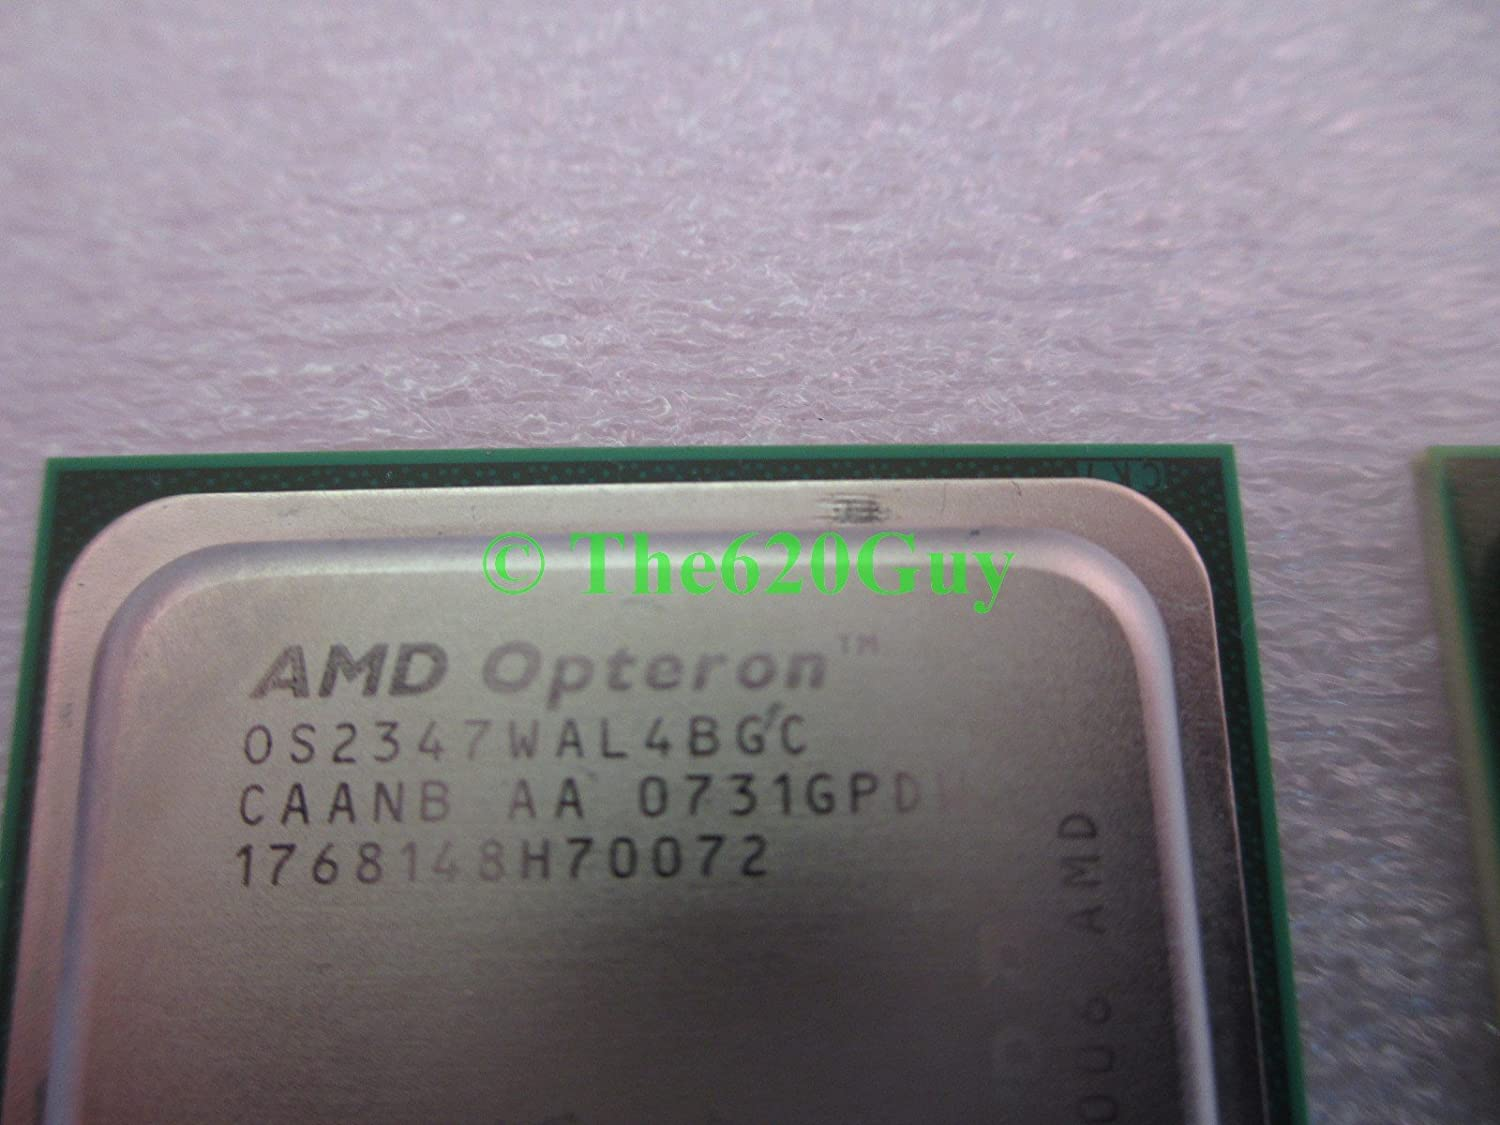 Lot of 2 AMD OS2347WAL4BGC Opteron 2347 Quad Core 1.9GHz Socket F CPUs Processo+